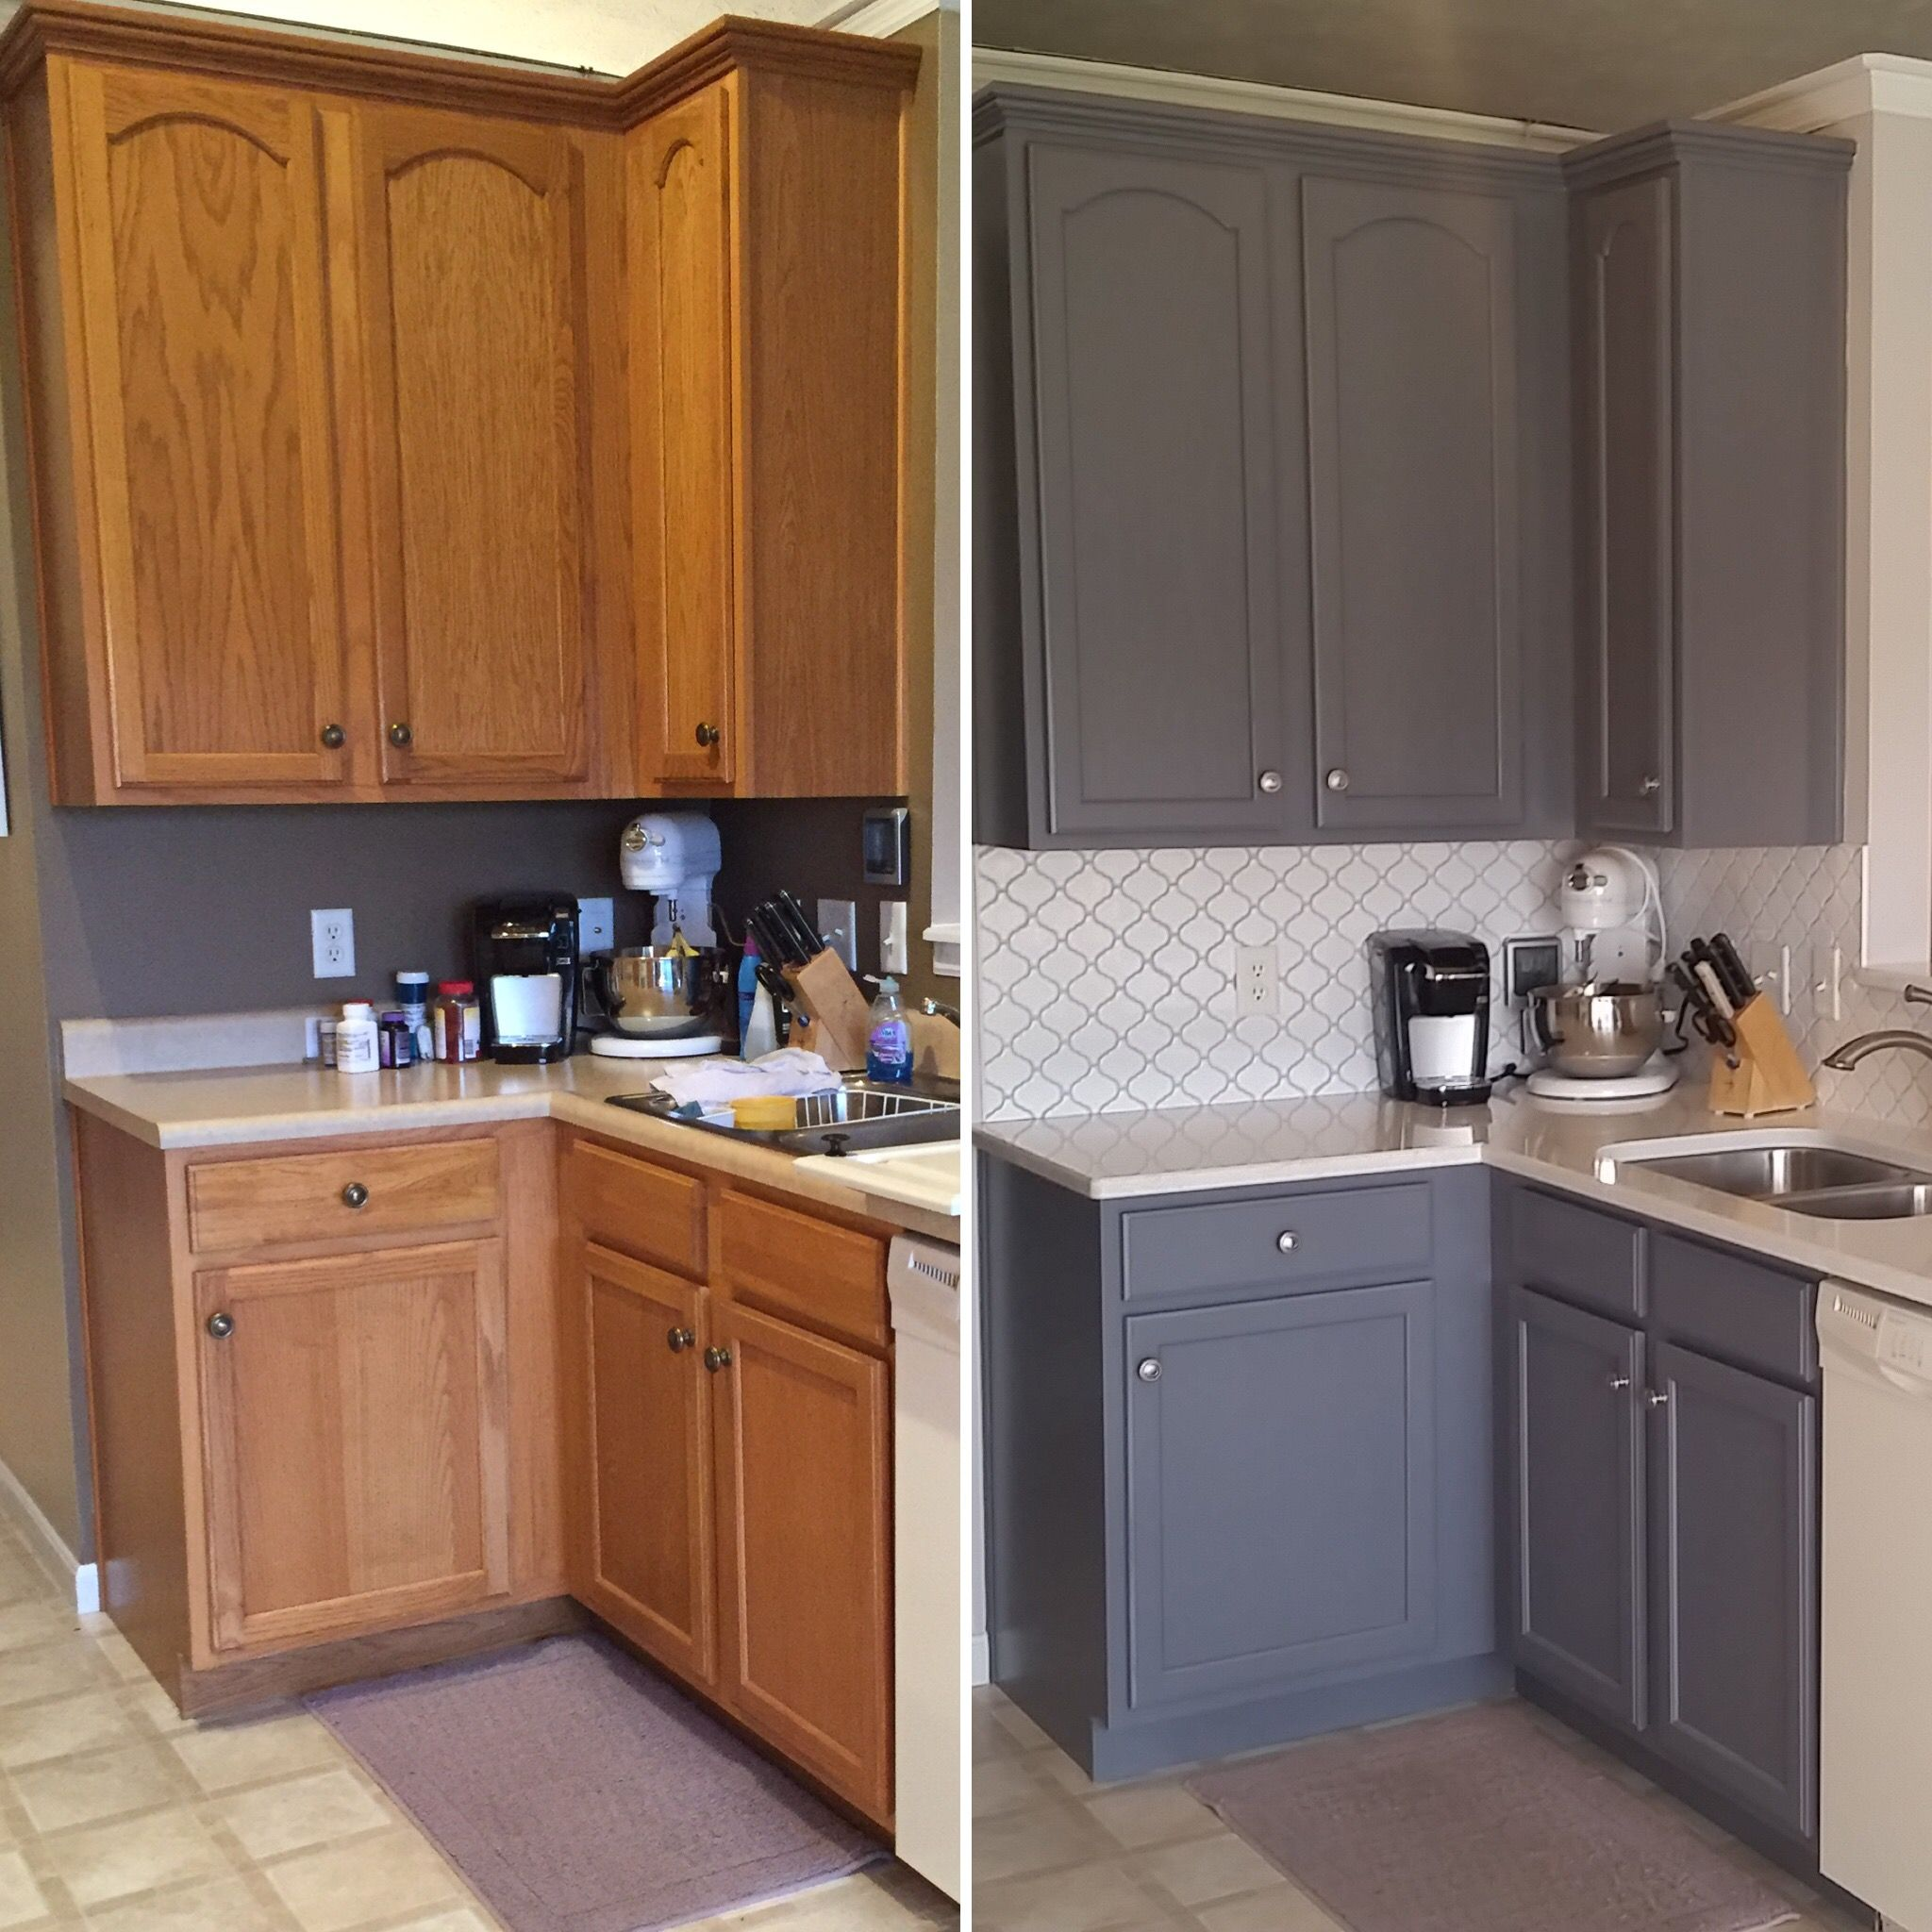 Updated Oak Kitchens  Kitchens And Spaces Cool Repainting Oak Kitchen Cabinets Inspiration Design